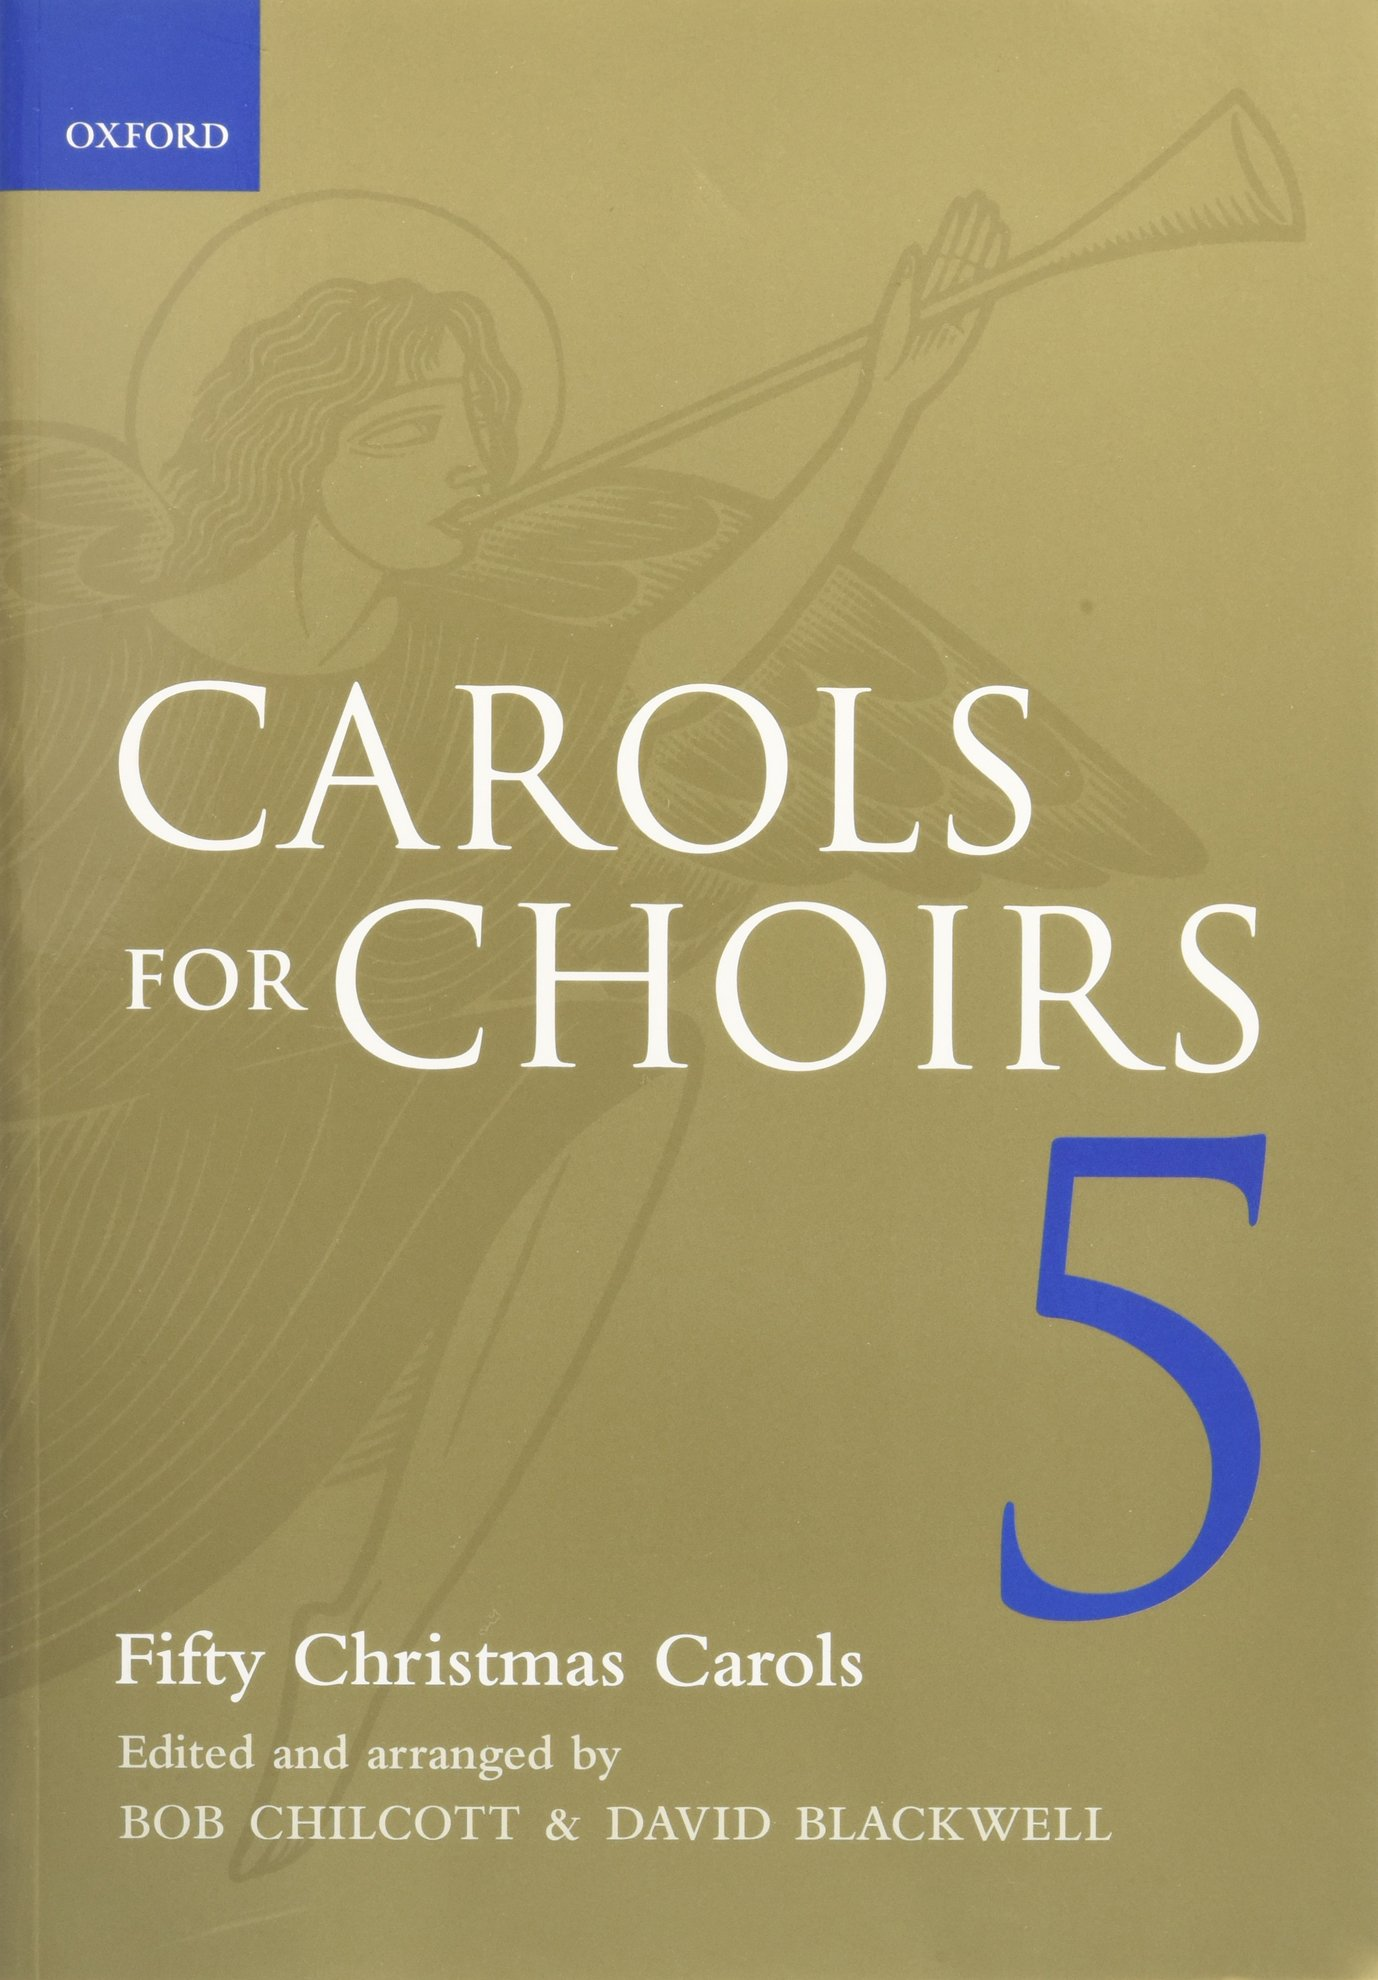 Carols for Choirs 5: Fifty Christmas Carols (. . . for Choirs ...